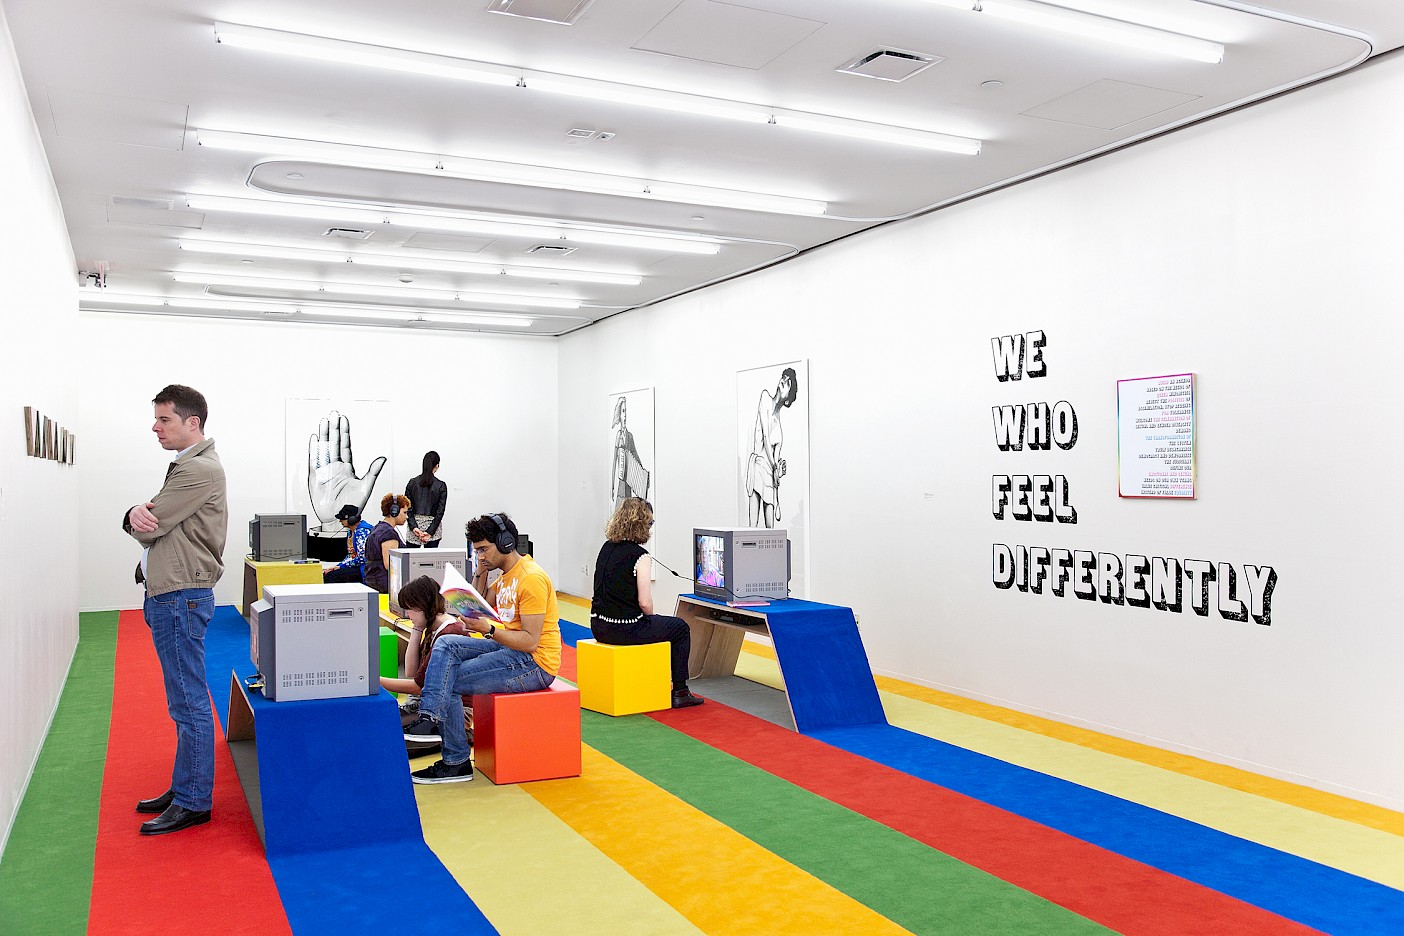 We Who Feel Differently, 2012 installation view at New Museum, New York. Photo by Naho Kubota